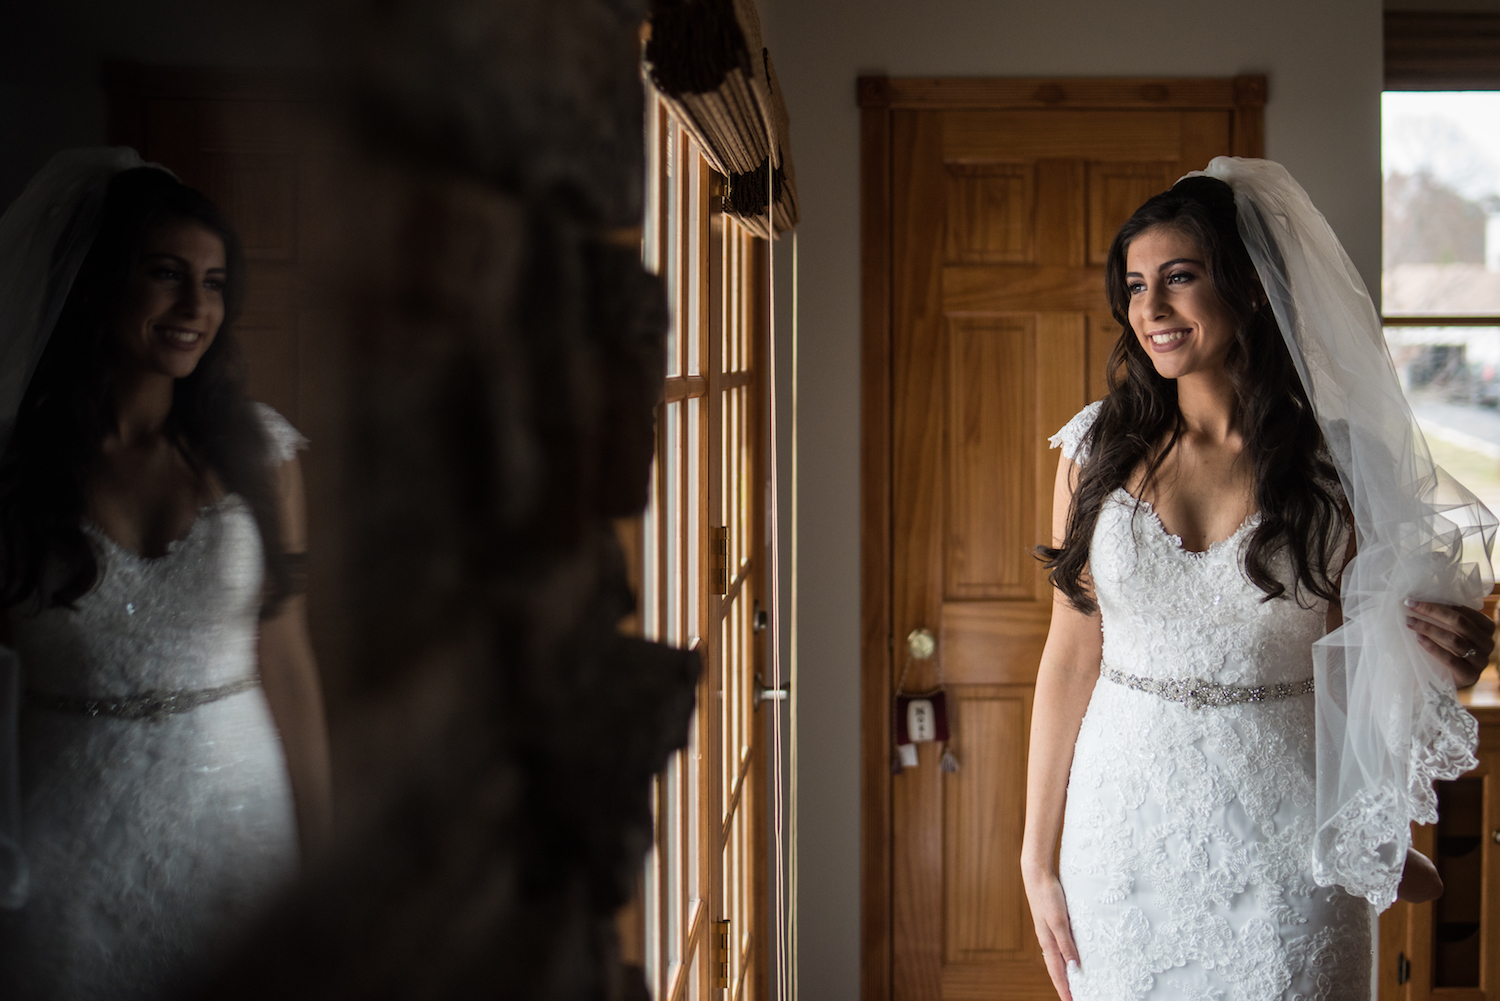 marissa-standing-at-window-bride-prep-wedding-photography-nj